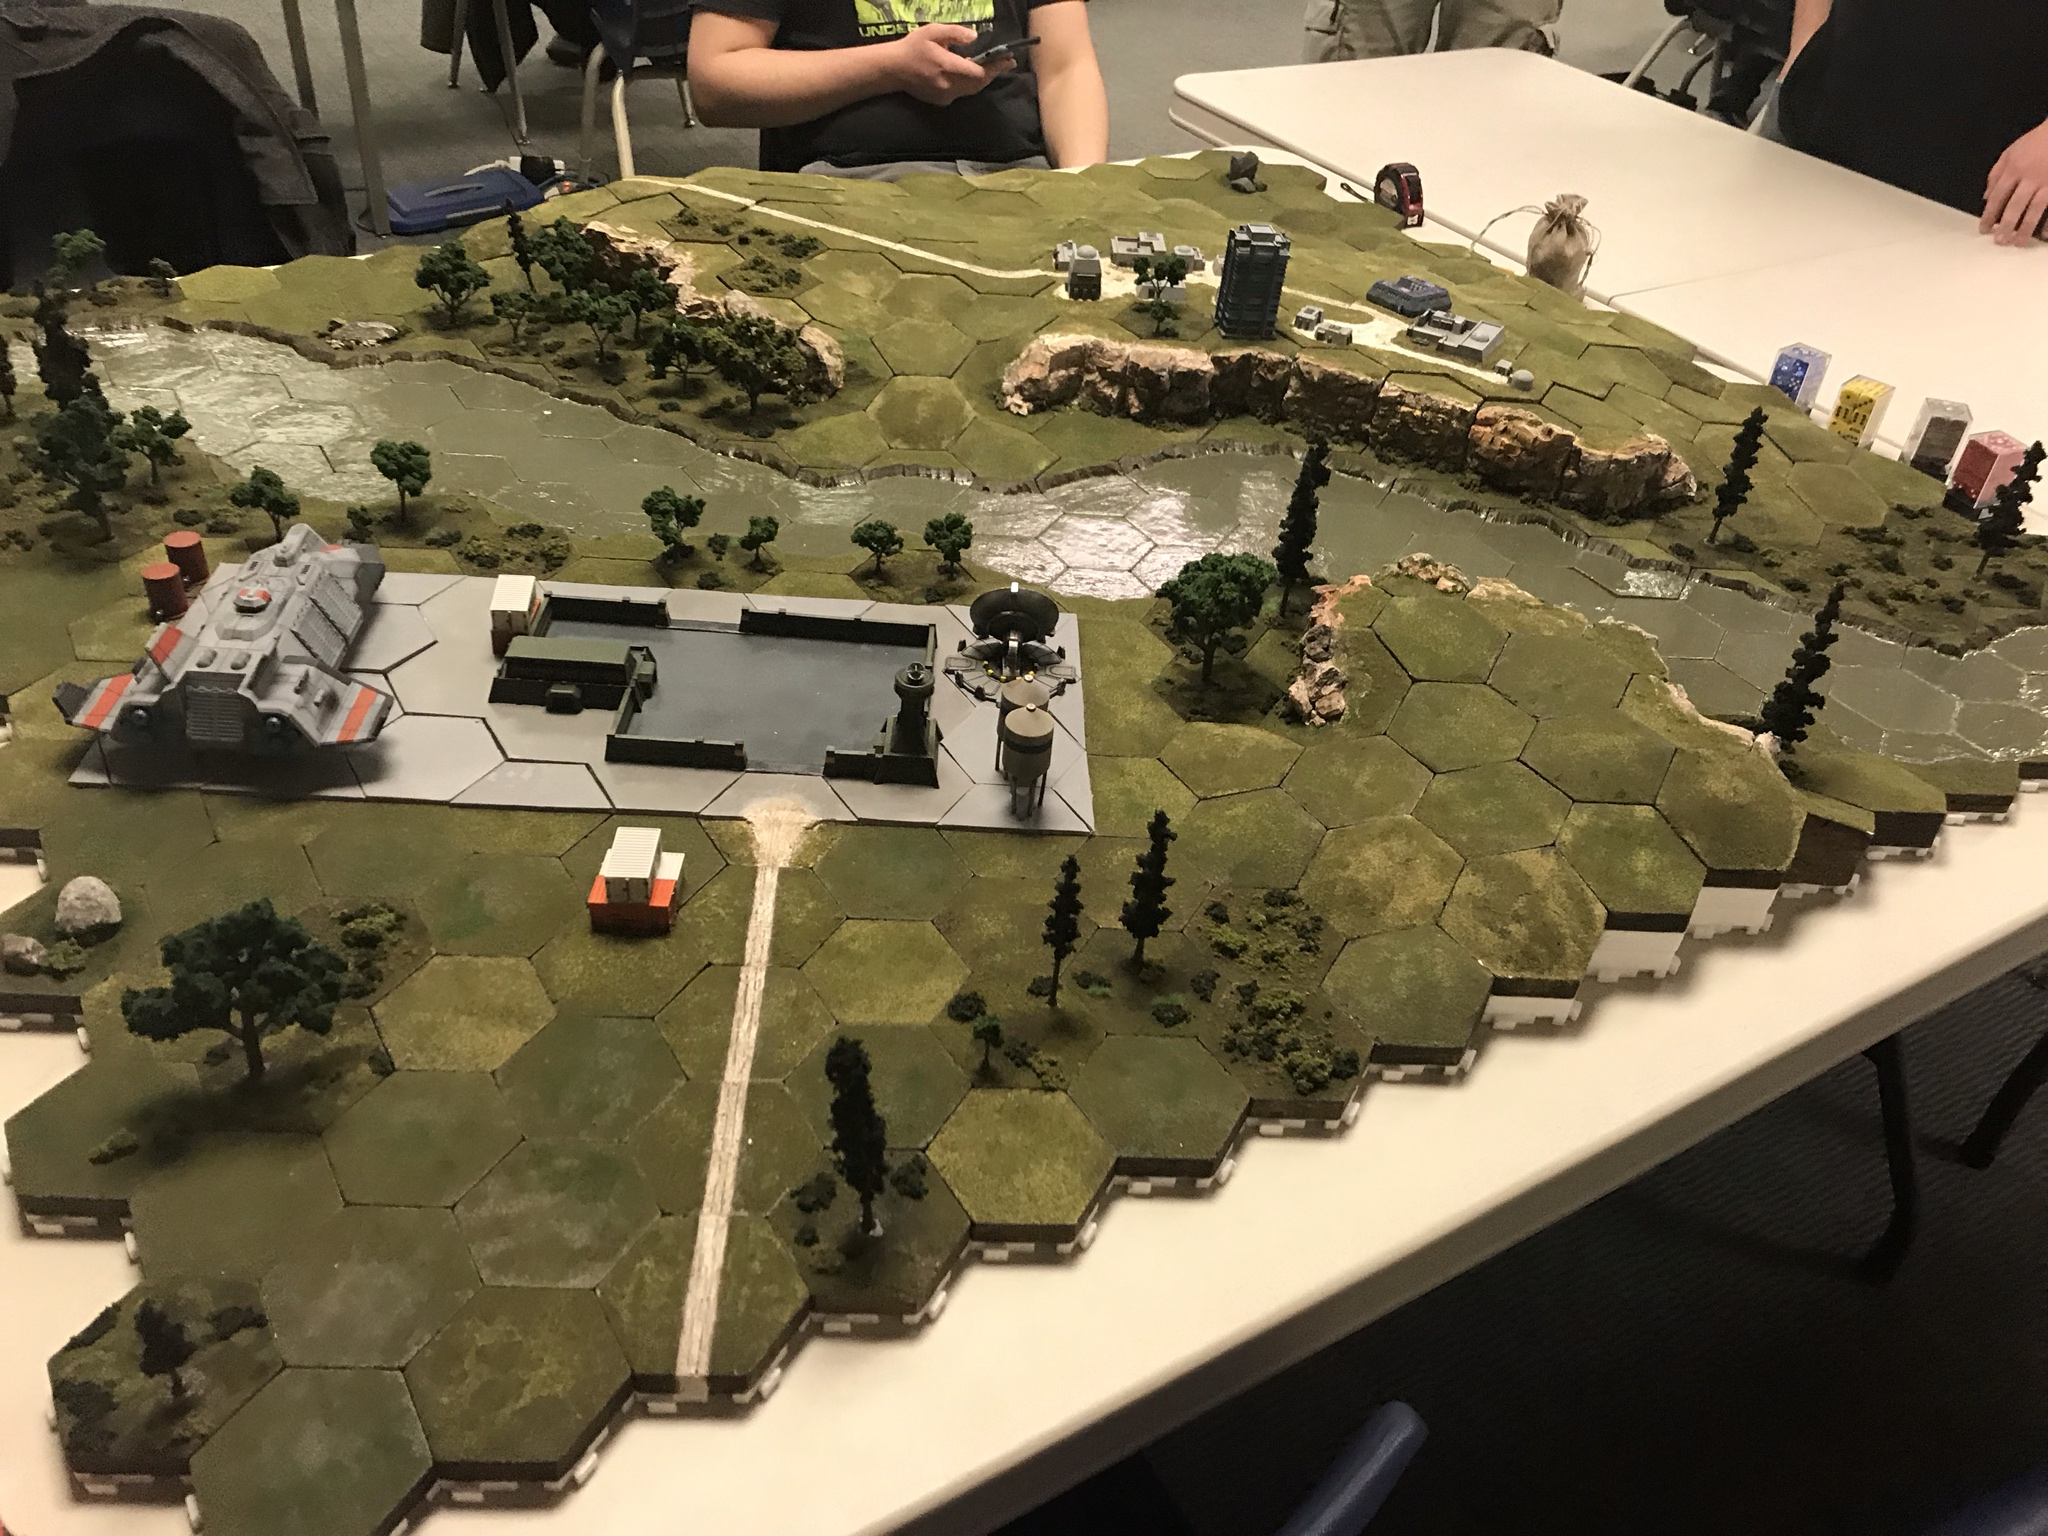 Battletech - Legiocon 2019